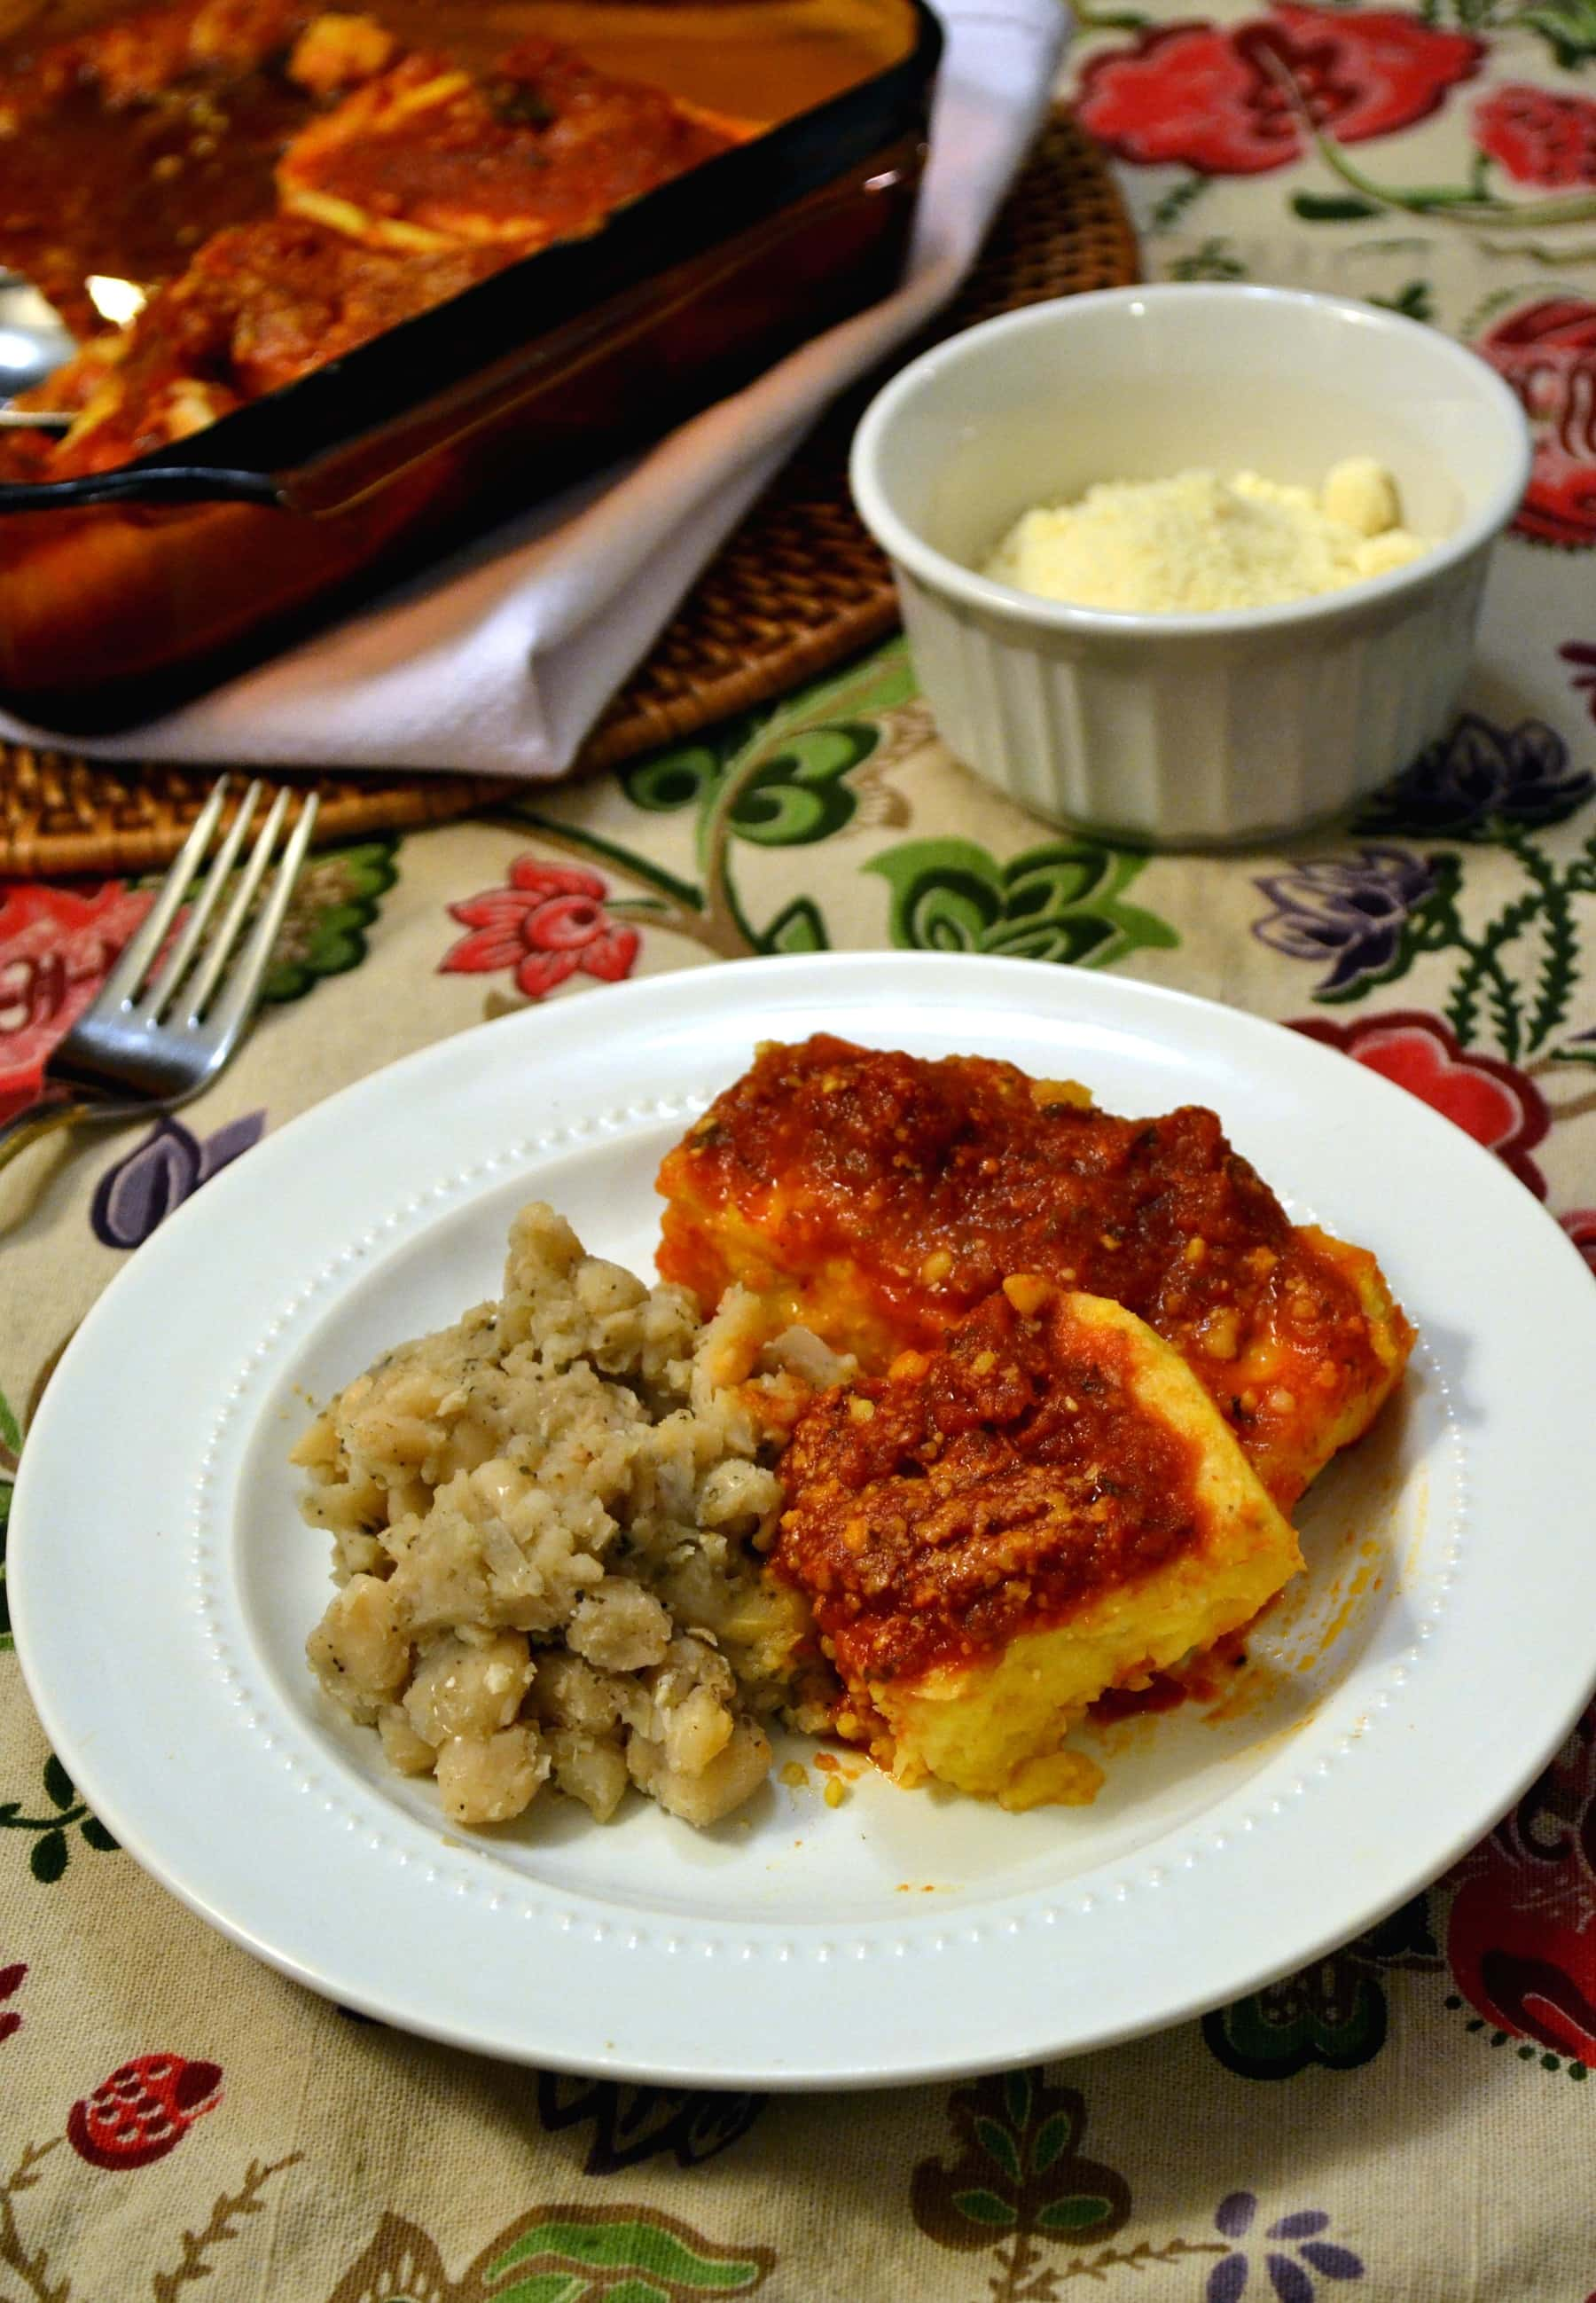 Creamy, velvety polenta the easy, oven-baked way, served beside rustic ...